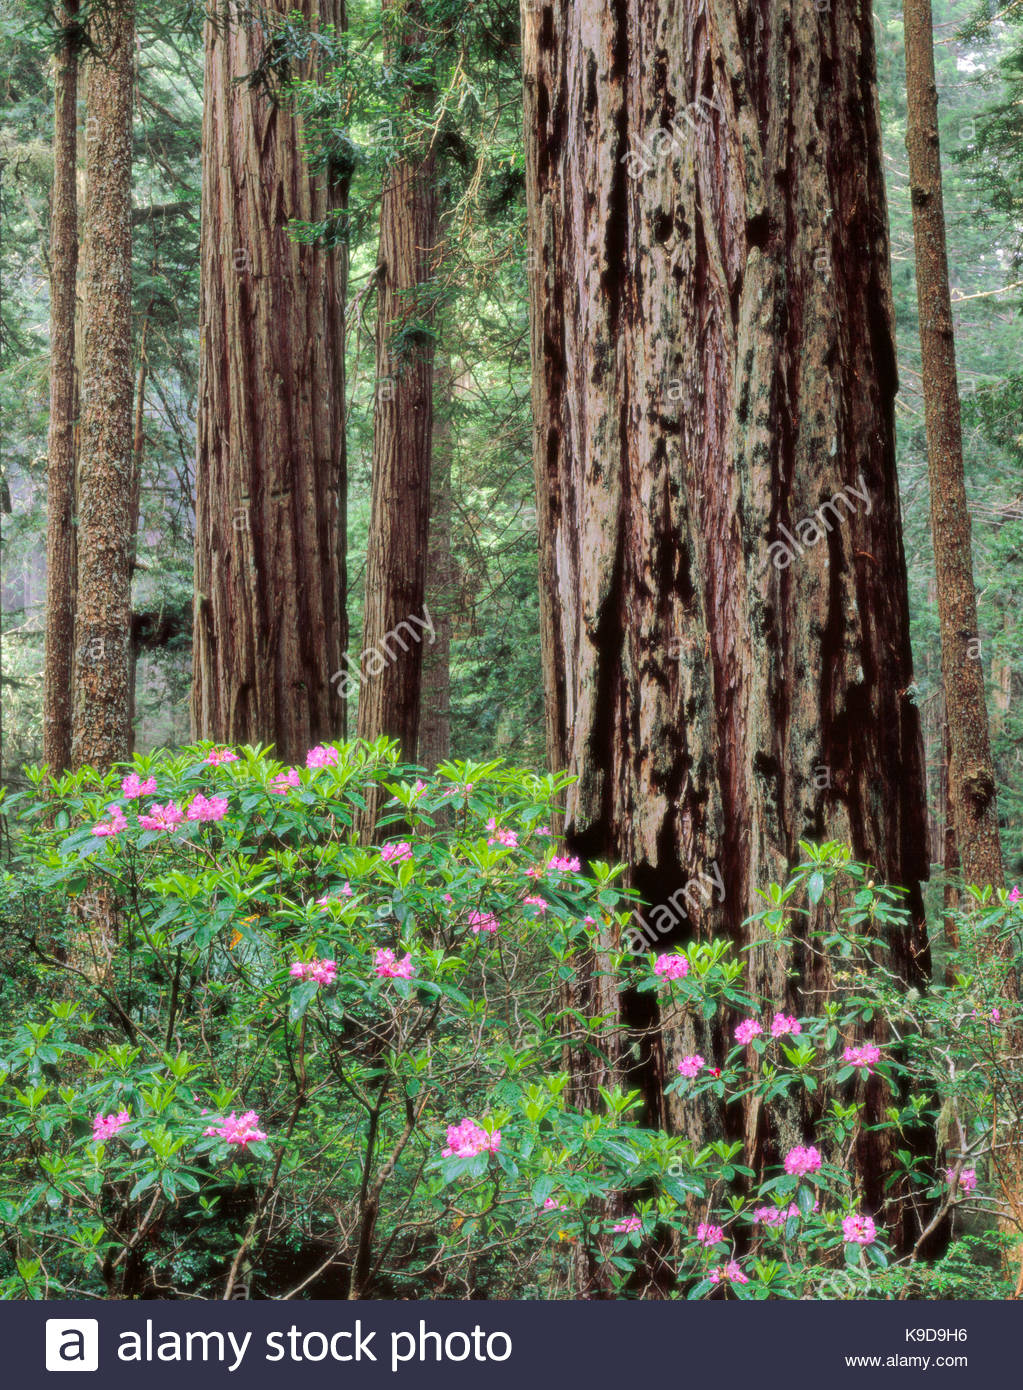 Rhododendron and Coast Redwood,Del Norte Coast Redwoods State Park,Redwood National Park, California - Stock Image